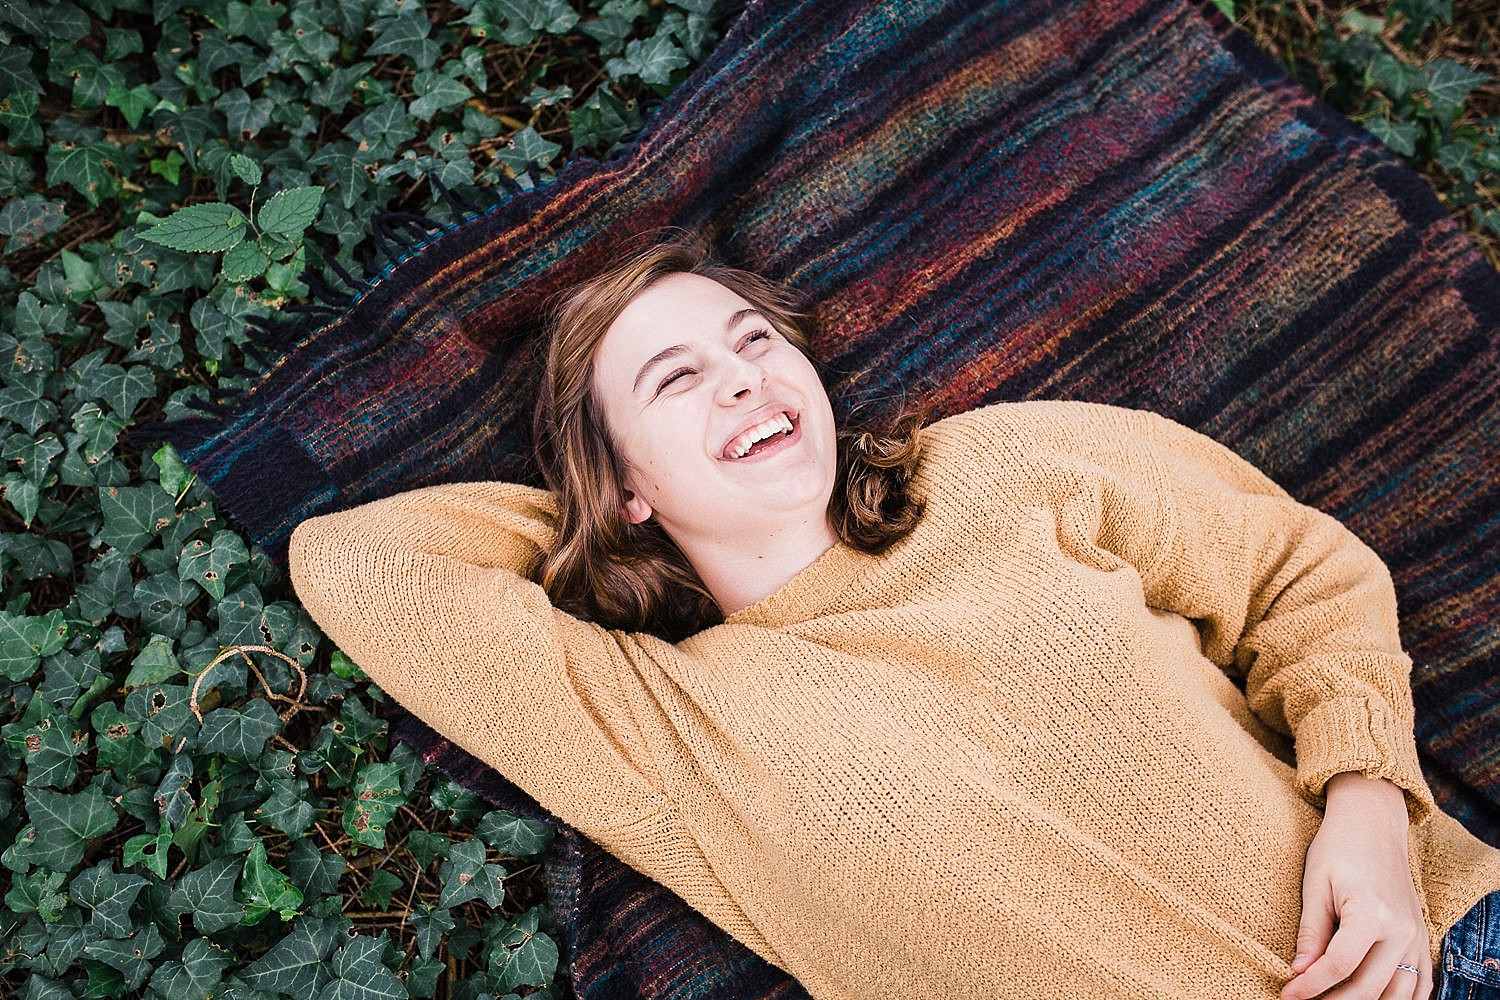 Lancaster senior session photo of a young girl in a yellow sweater and jeans lying on a striped blanket in a bed of ivy.